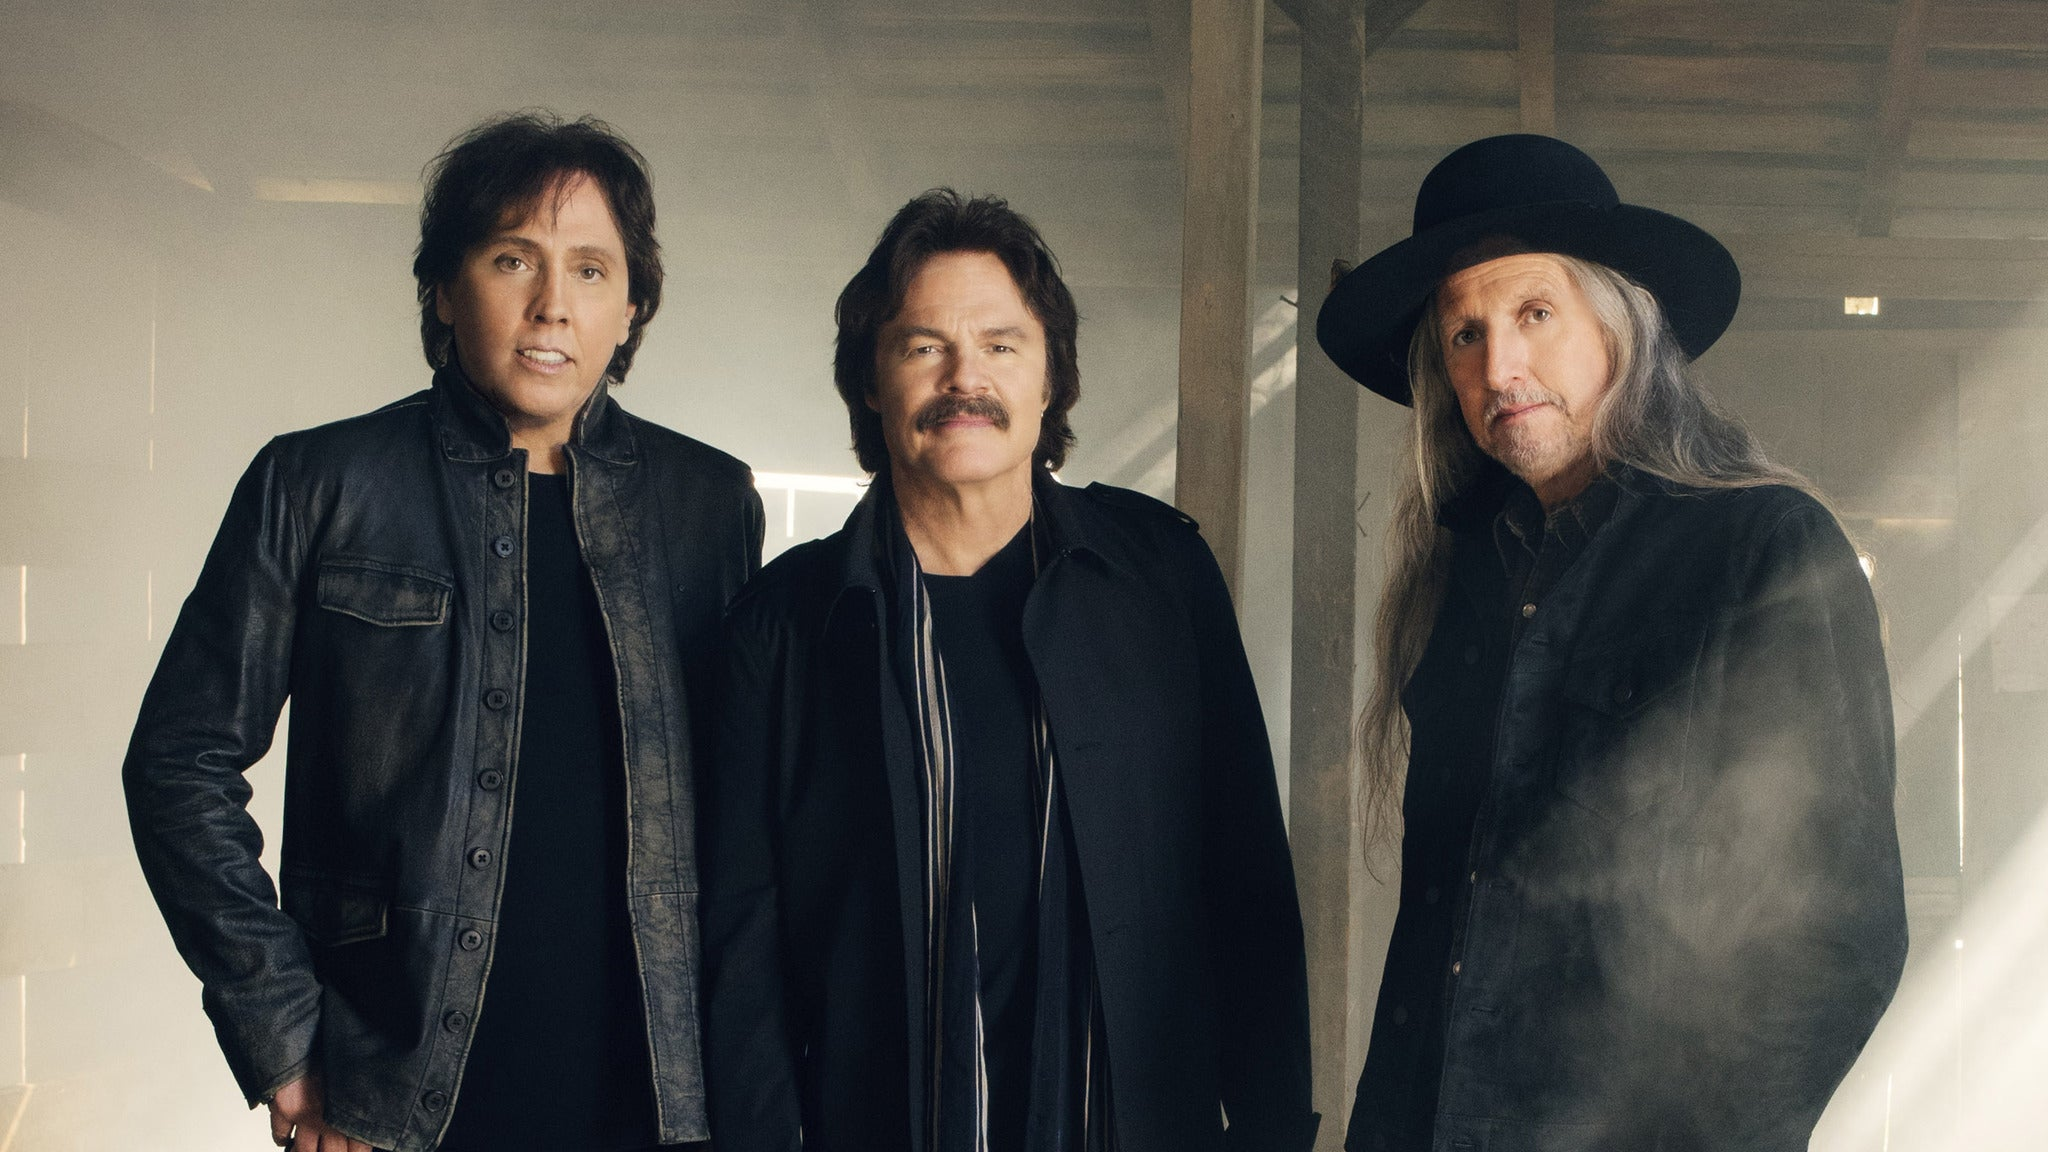 The Doobie Brothers - Meet & Greet Packages at Clay Center